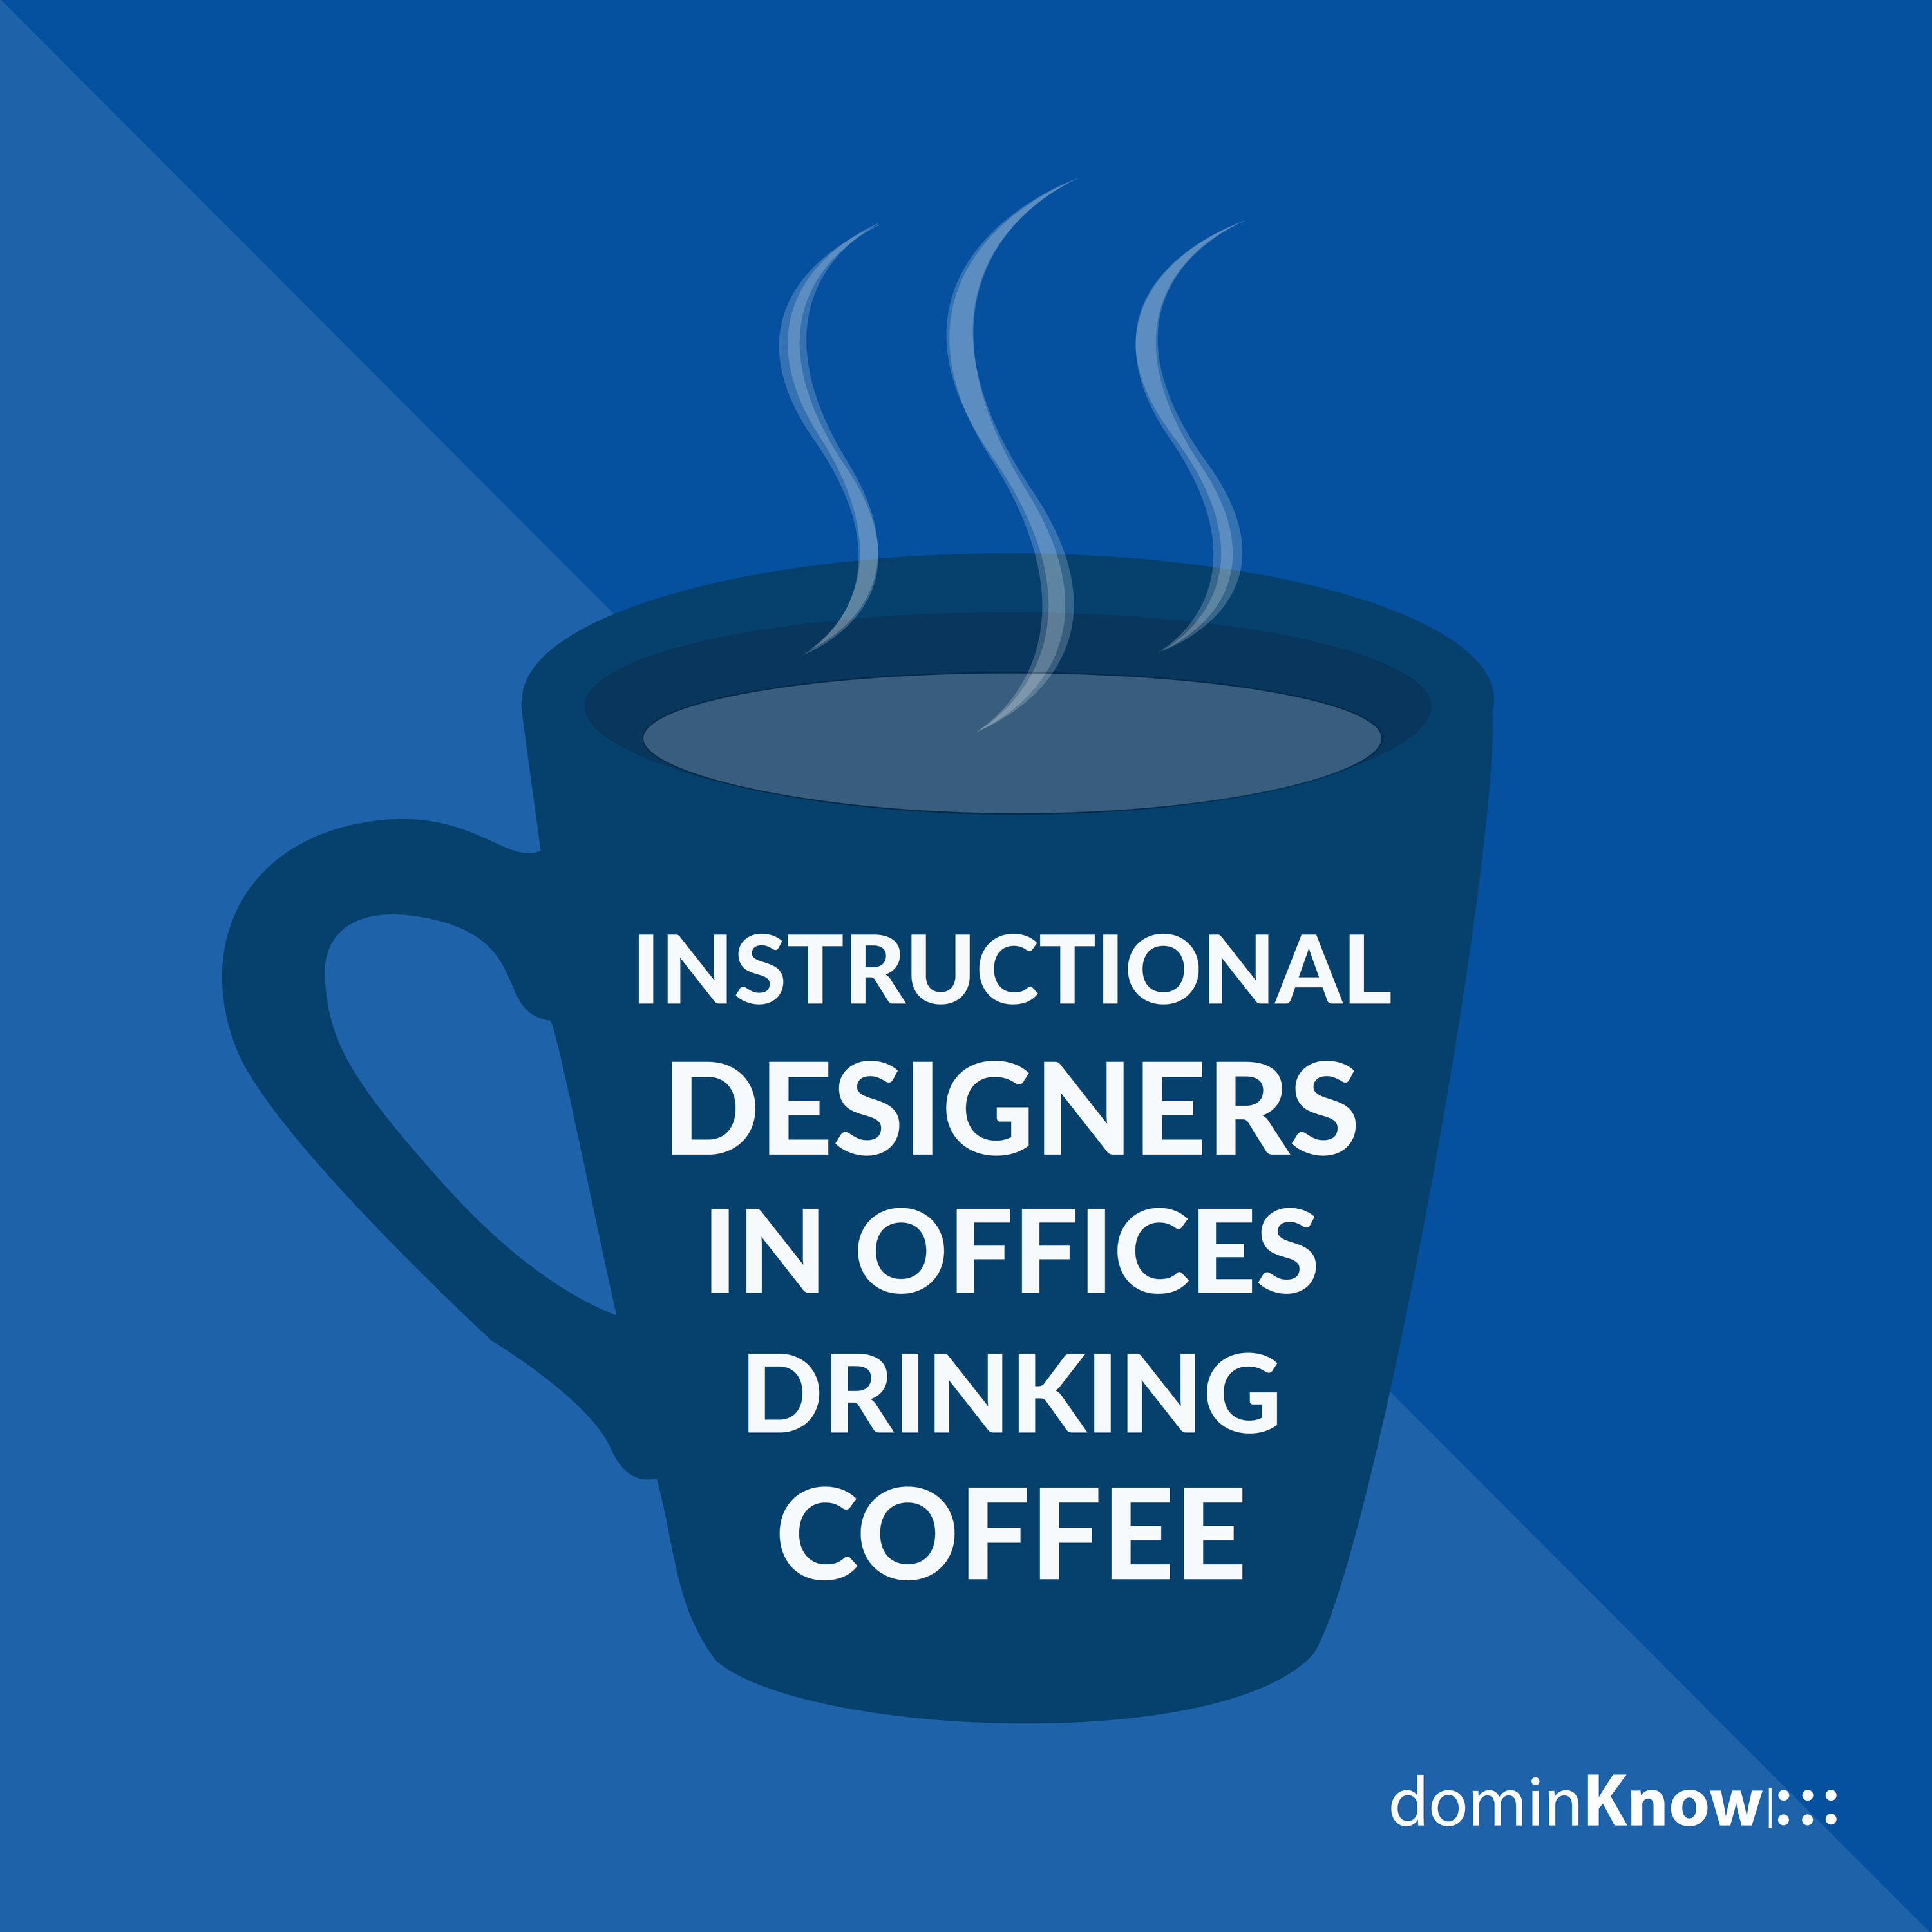 Instructional Designers In Offices Drinking Coffee